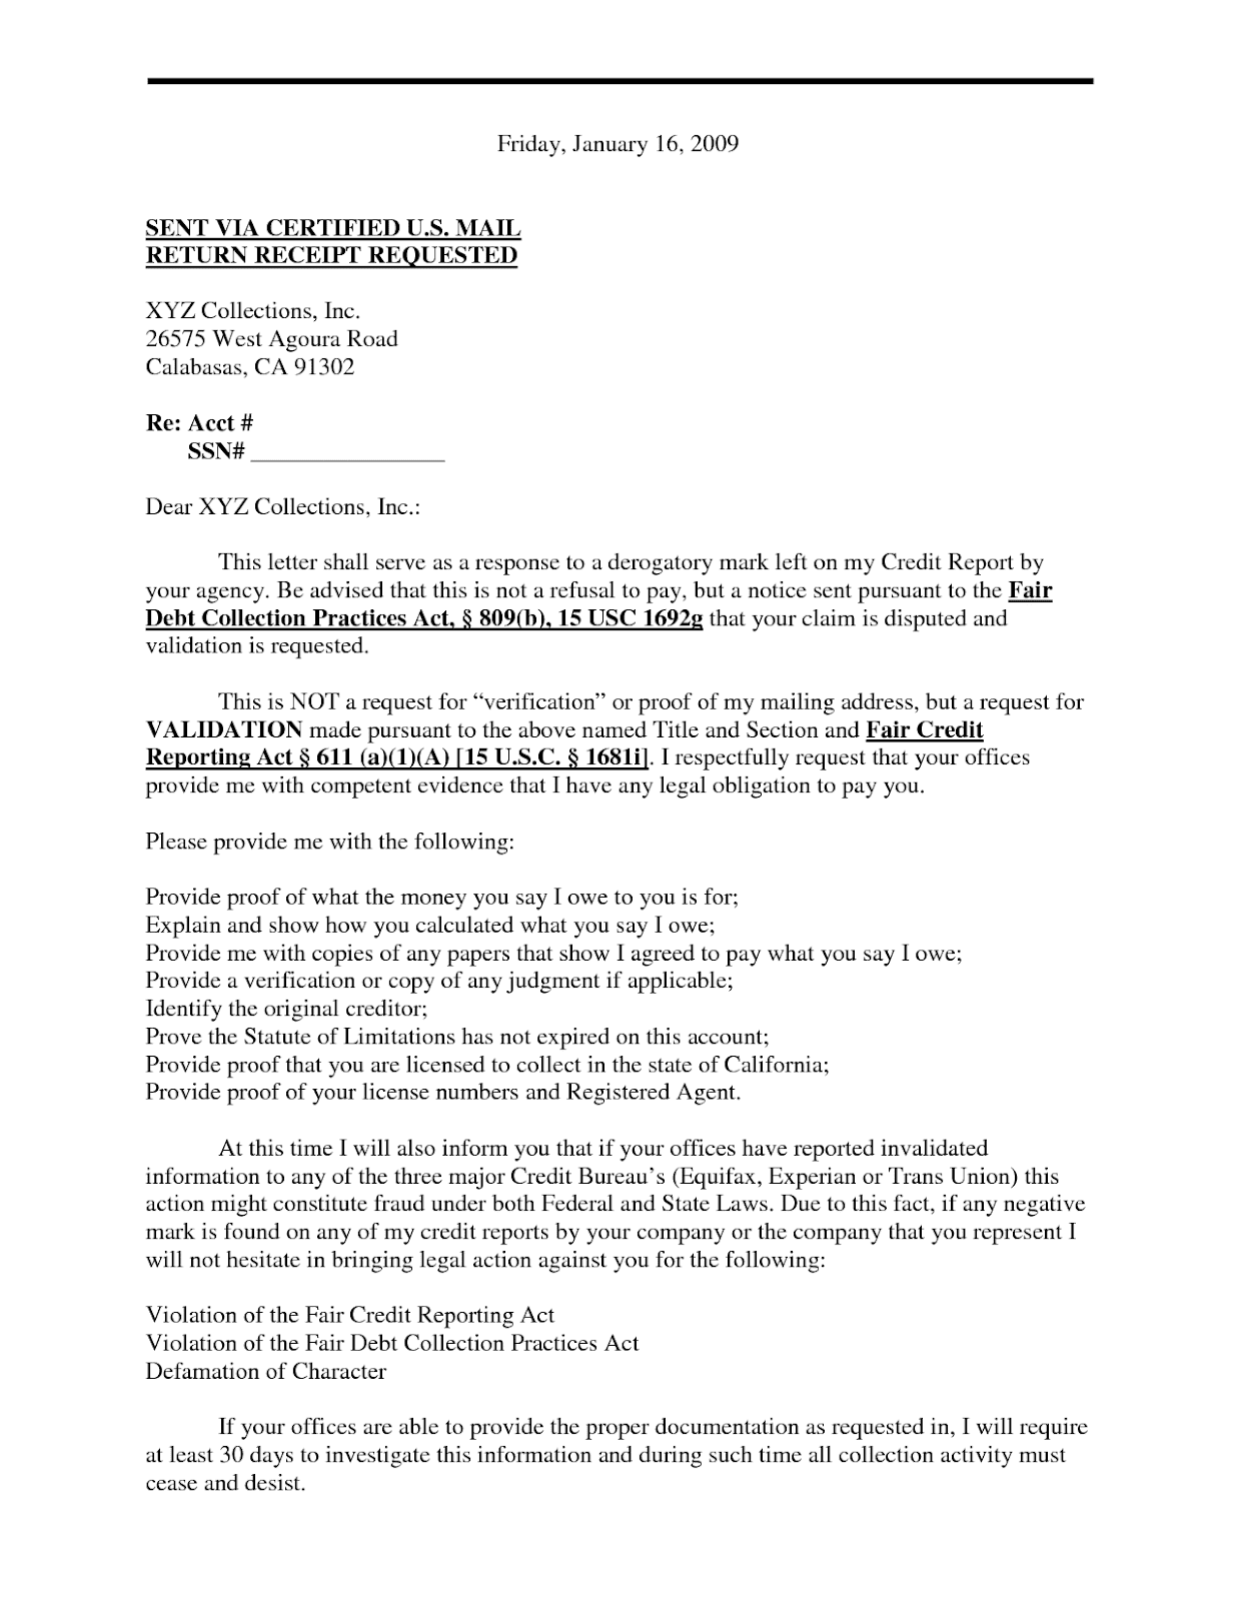 Debt Validation Letter To Credit Bureaus Pdf